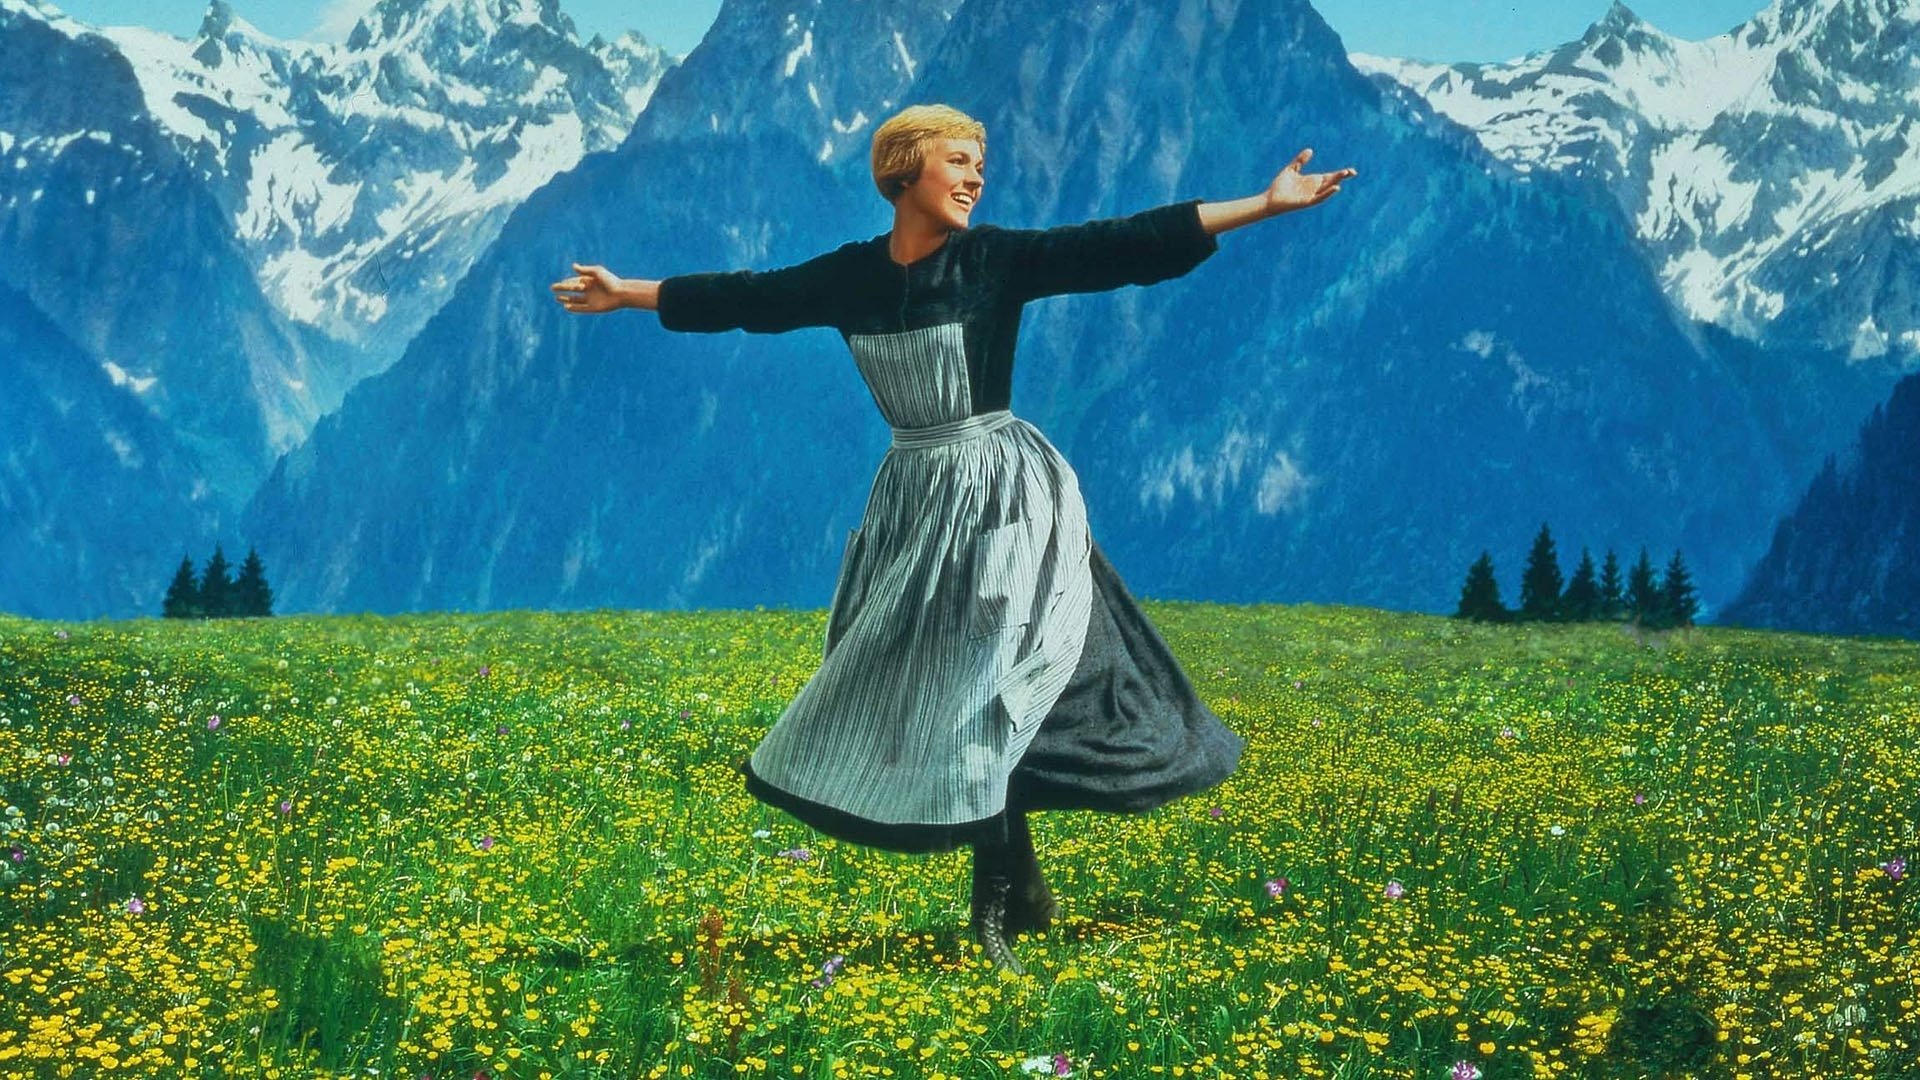 10 The Sound Of Music Hd Wallpapers Background Images Wallpaper Abyss